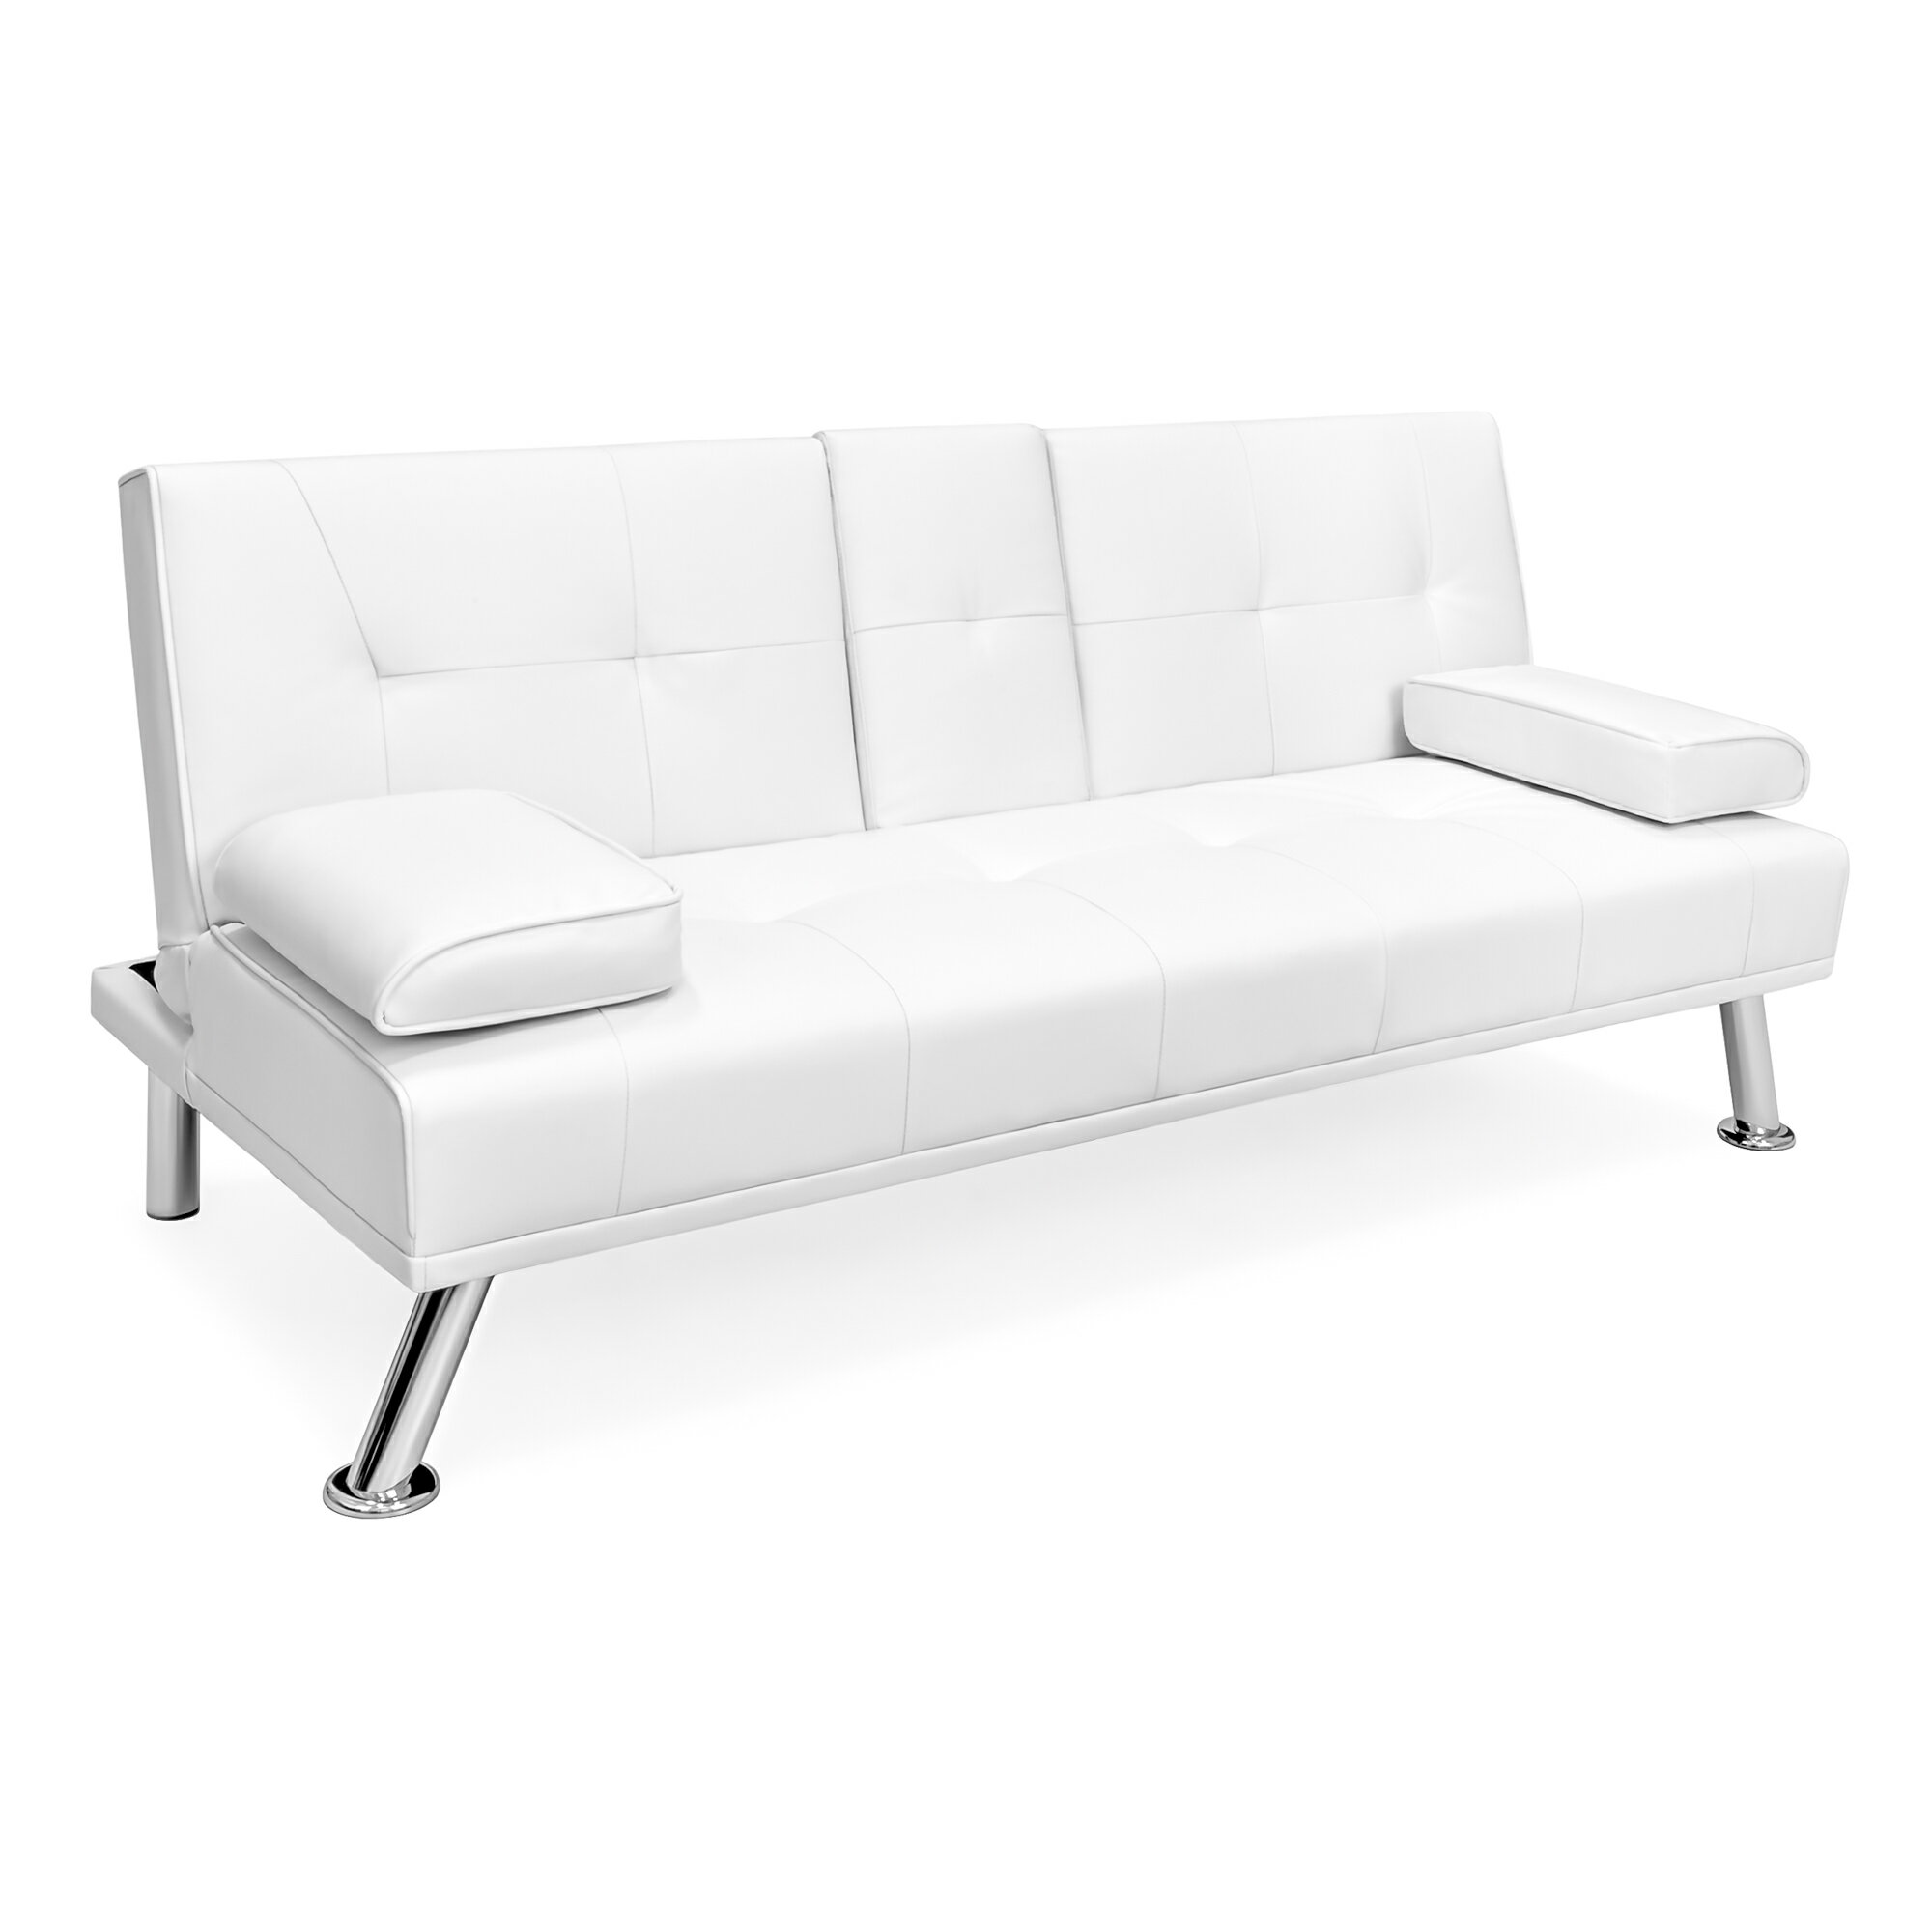 Best Choice Products Modern Faux Leather Convertible Futon Sofa Bed Recliner Couch W Metal Legs